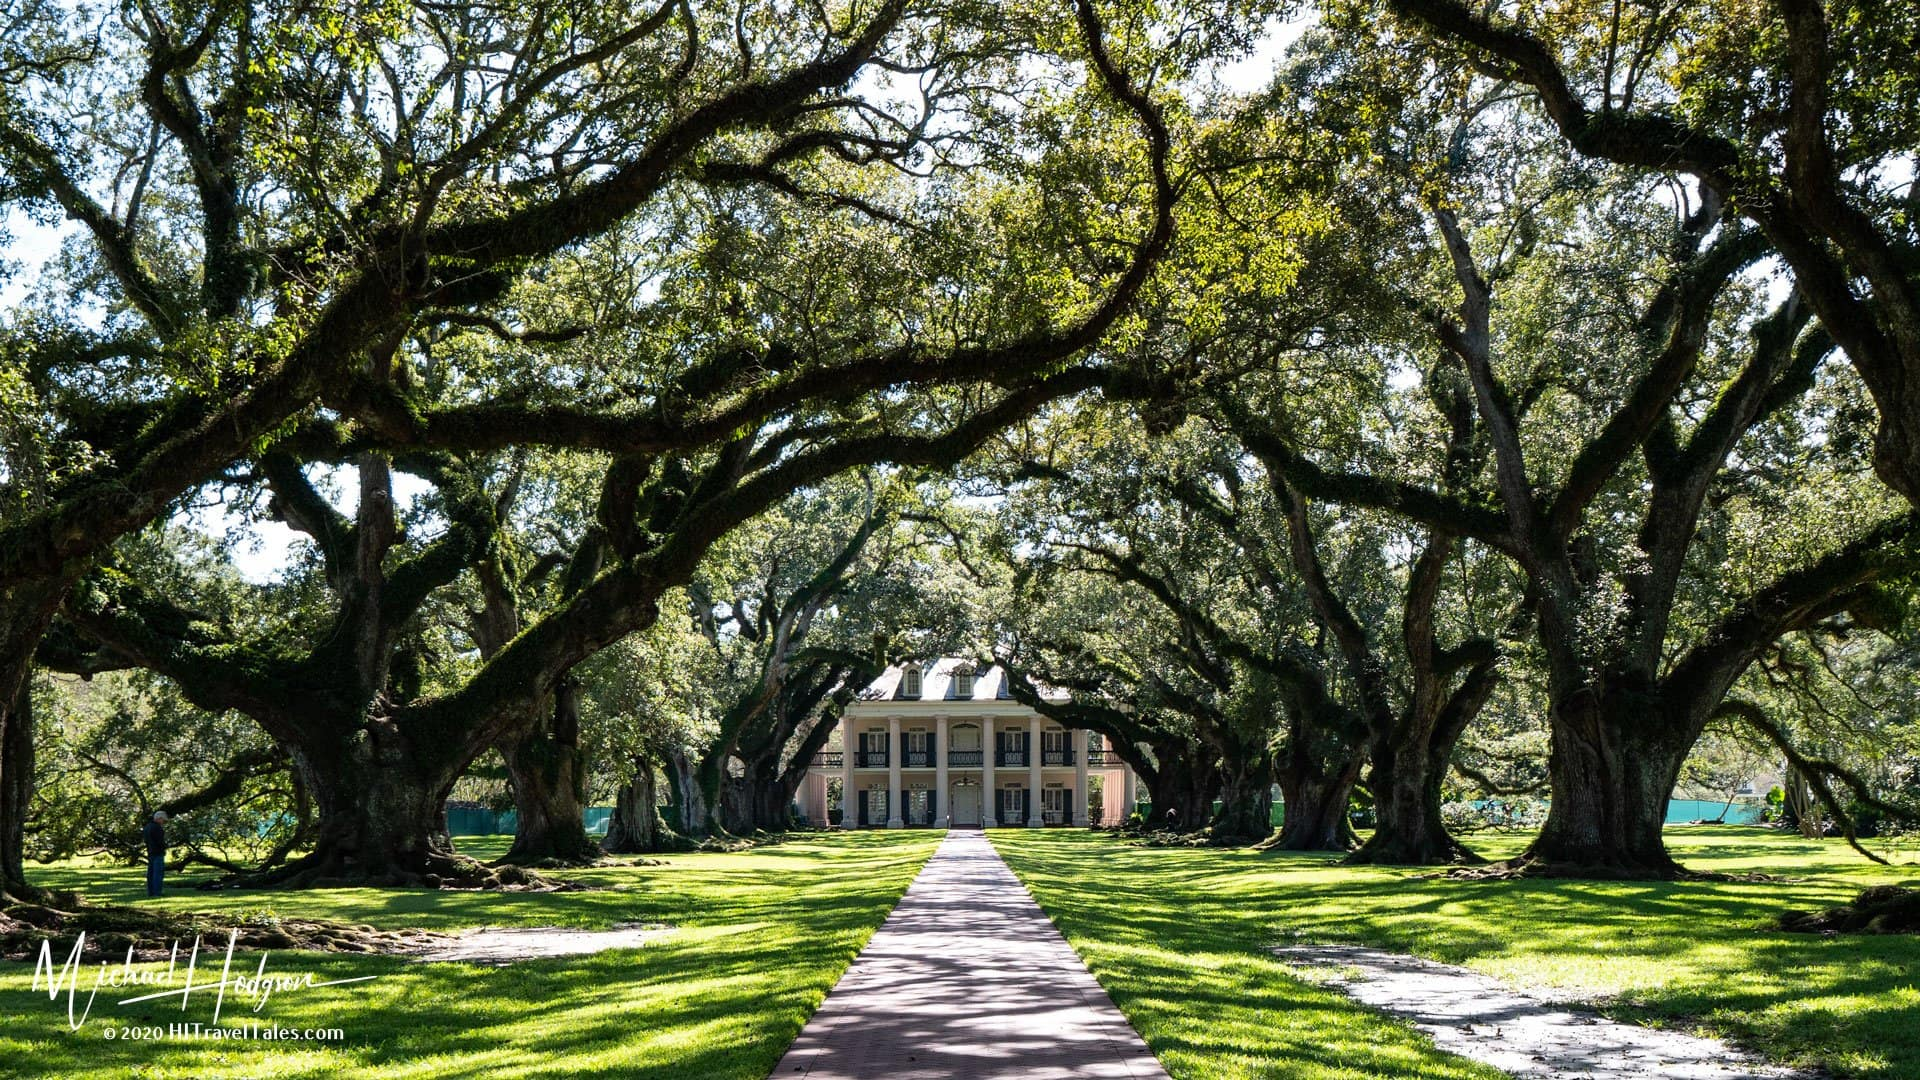 Oak Alley Plantation Oaks And Mansion Entrance In New Orleans Plantation Country